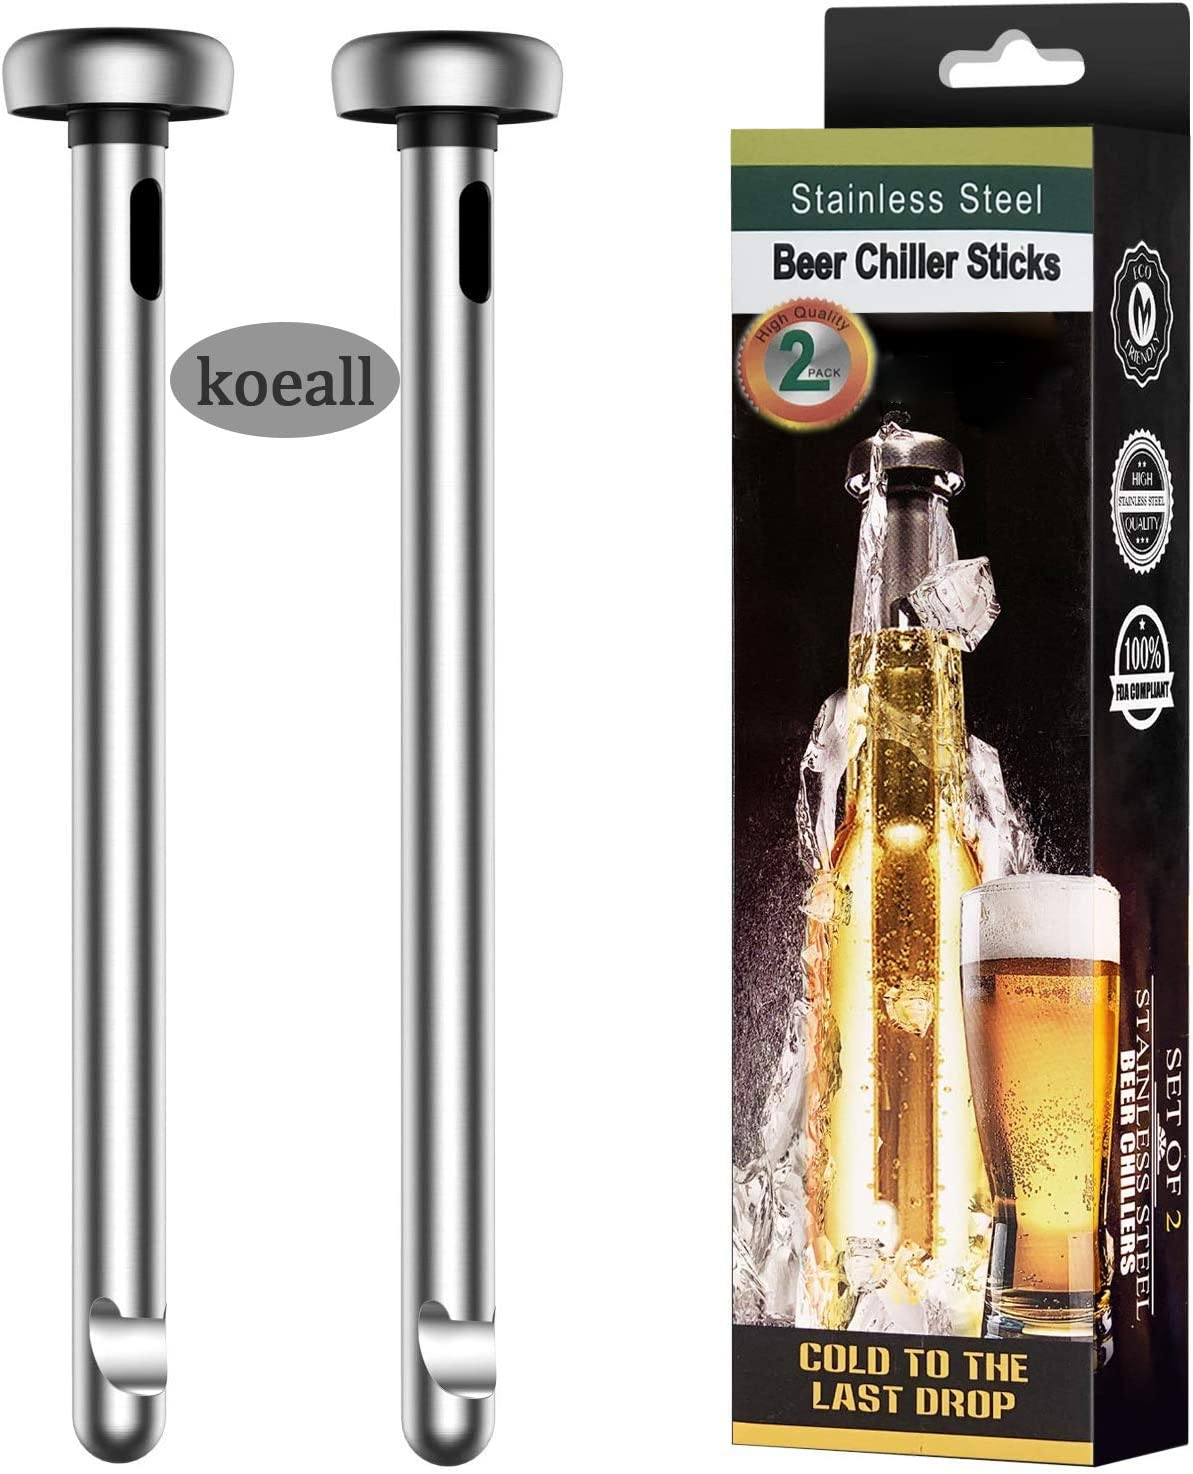 koeall Beer Chiller Stick Stainless Cooling Miami Mall Stic Beverage Max 58% OFF Steel